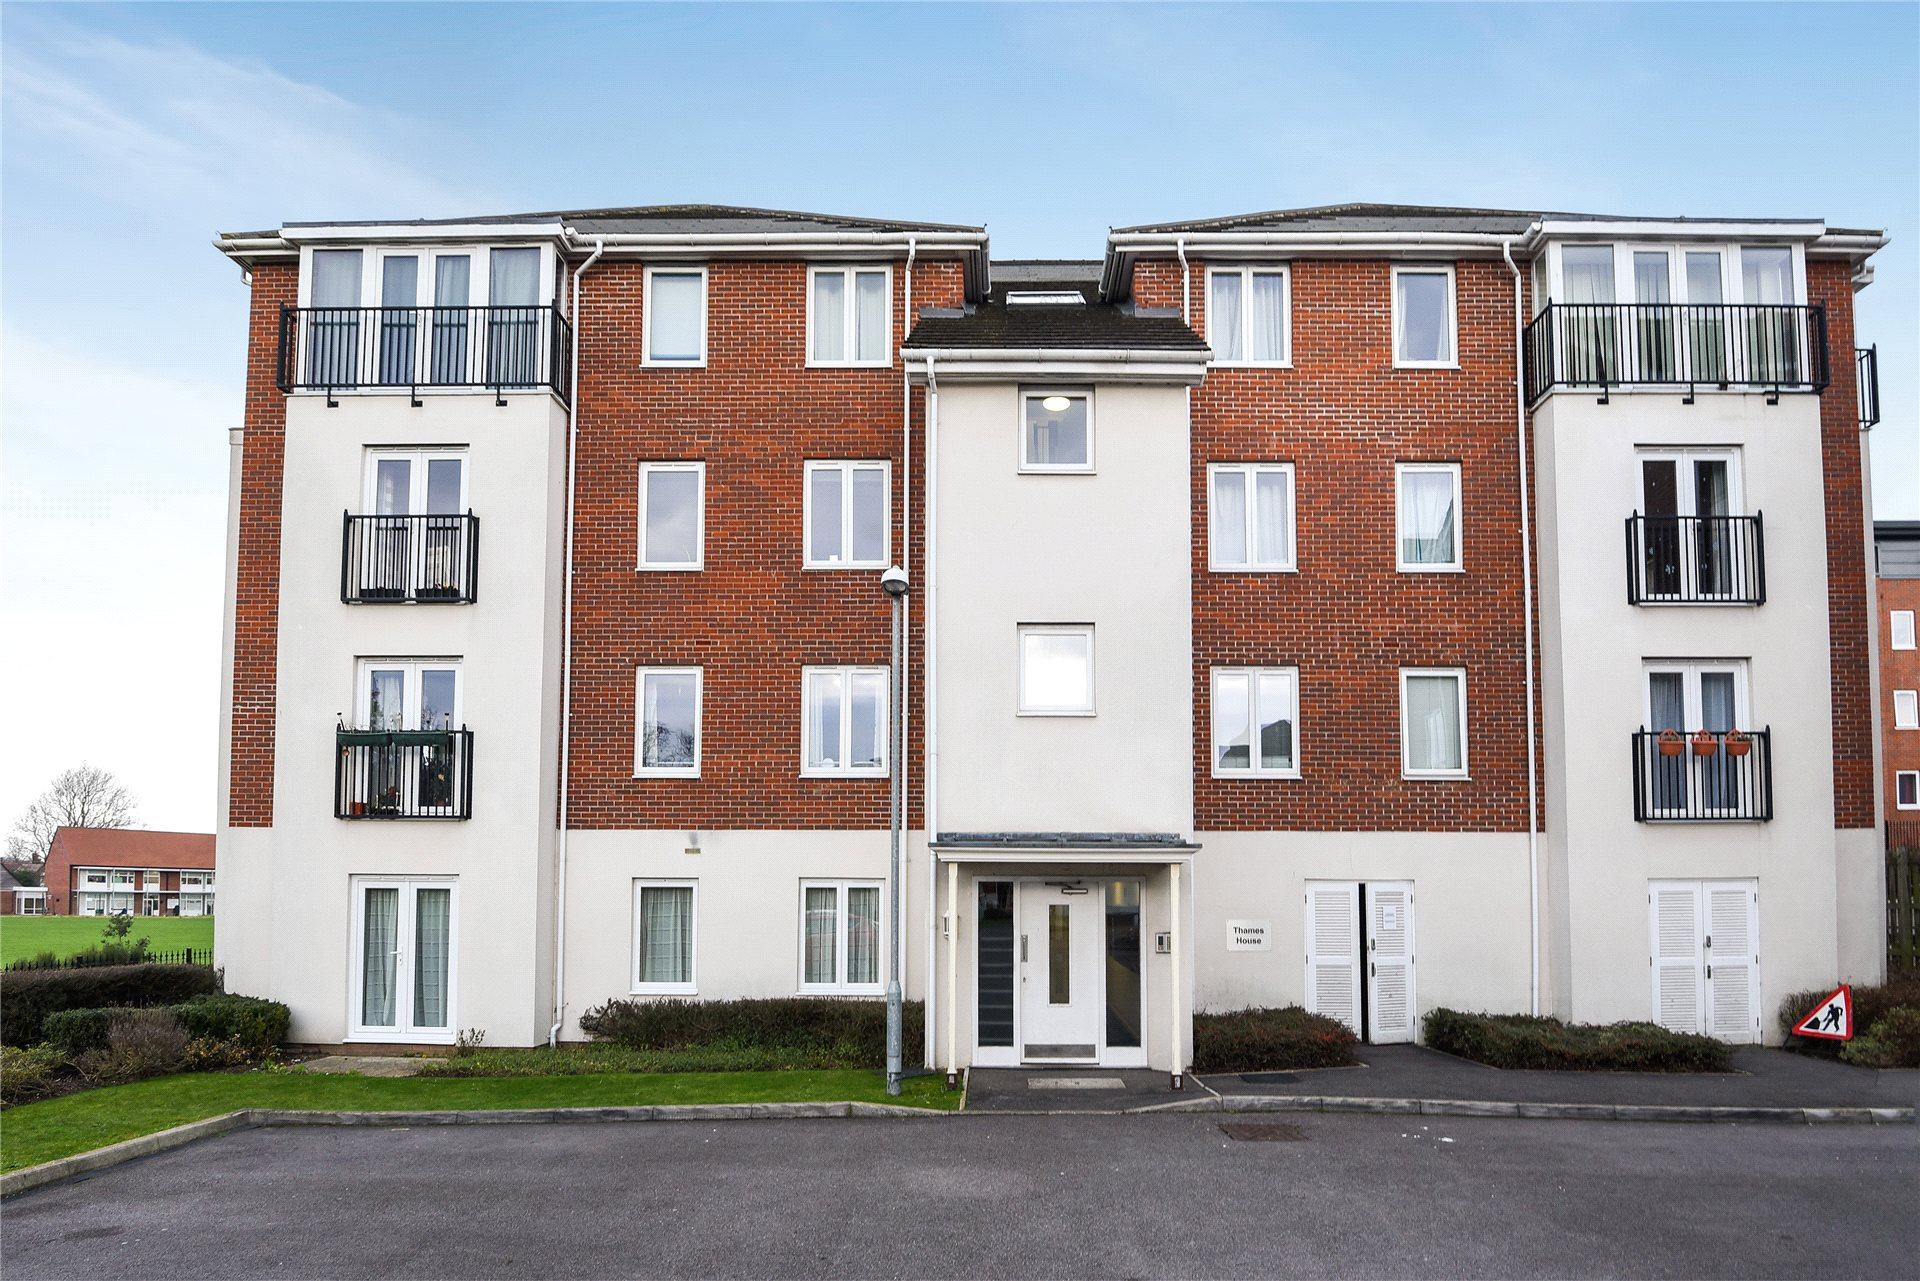 2 Bedrooms Apartment Flat for sale in Thames House, Reading, Berkshire, RG6